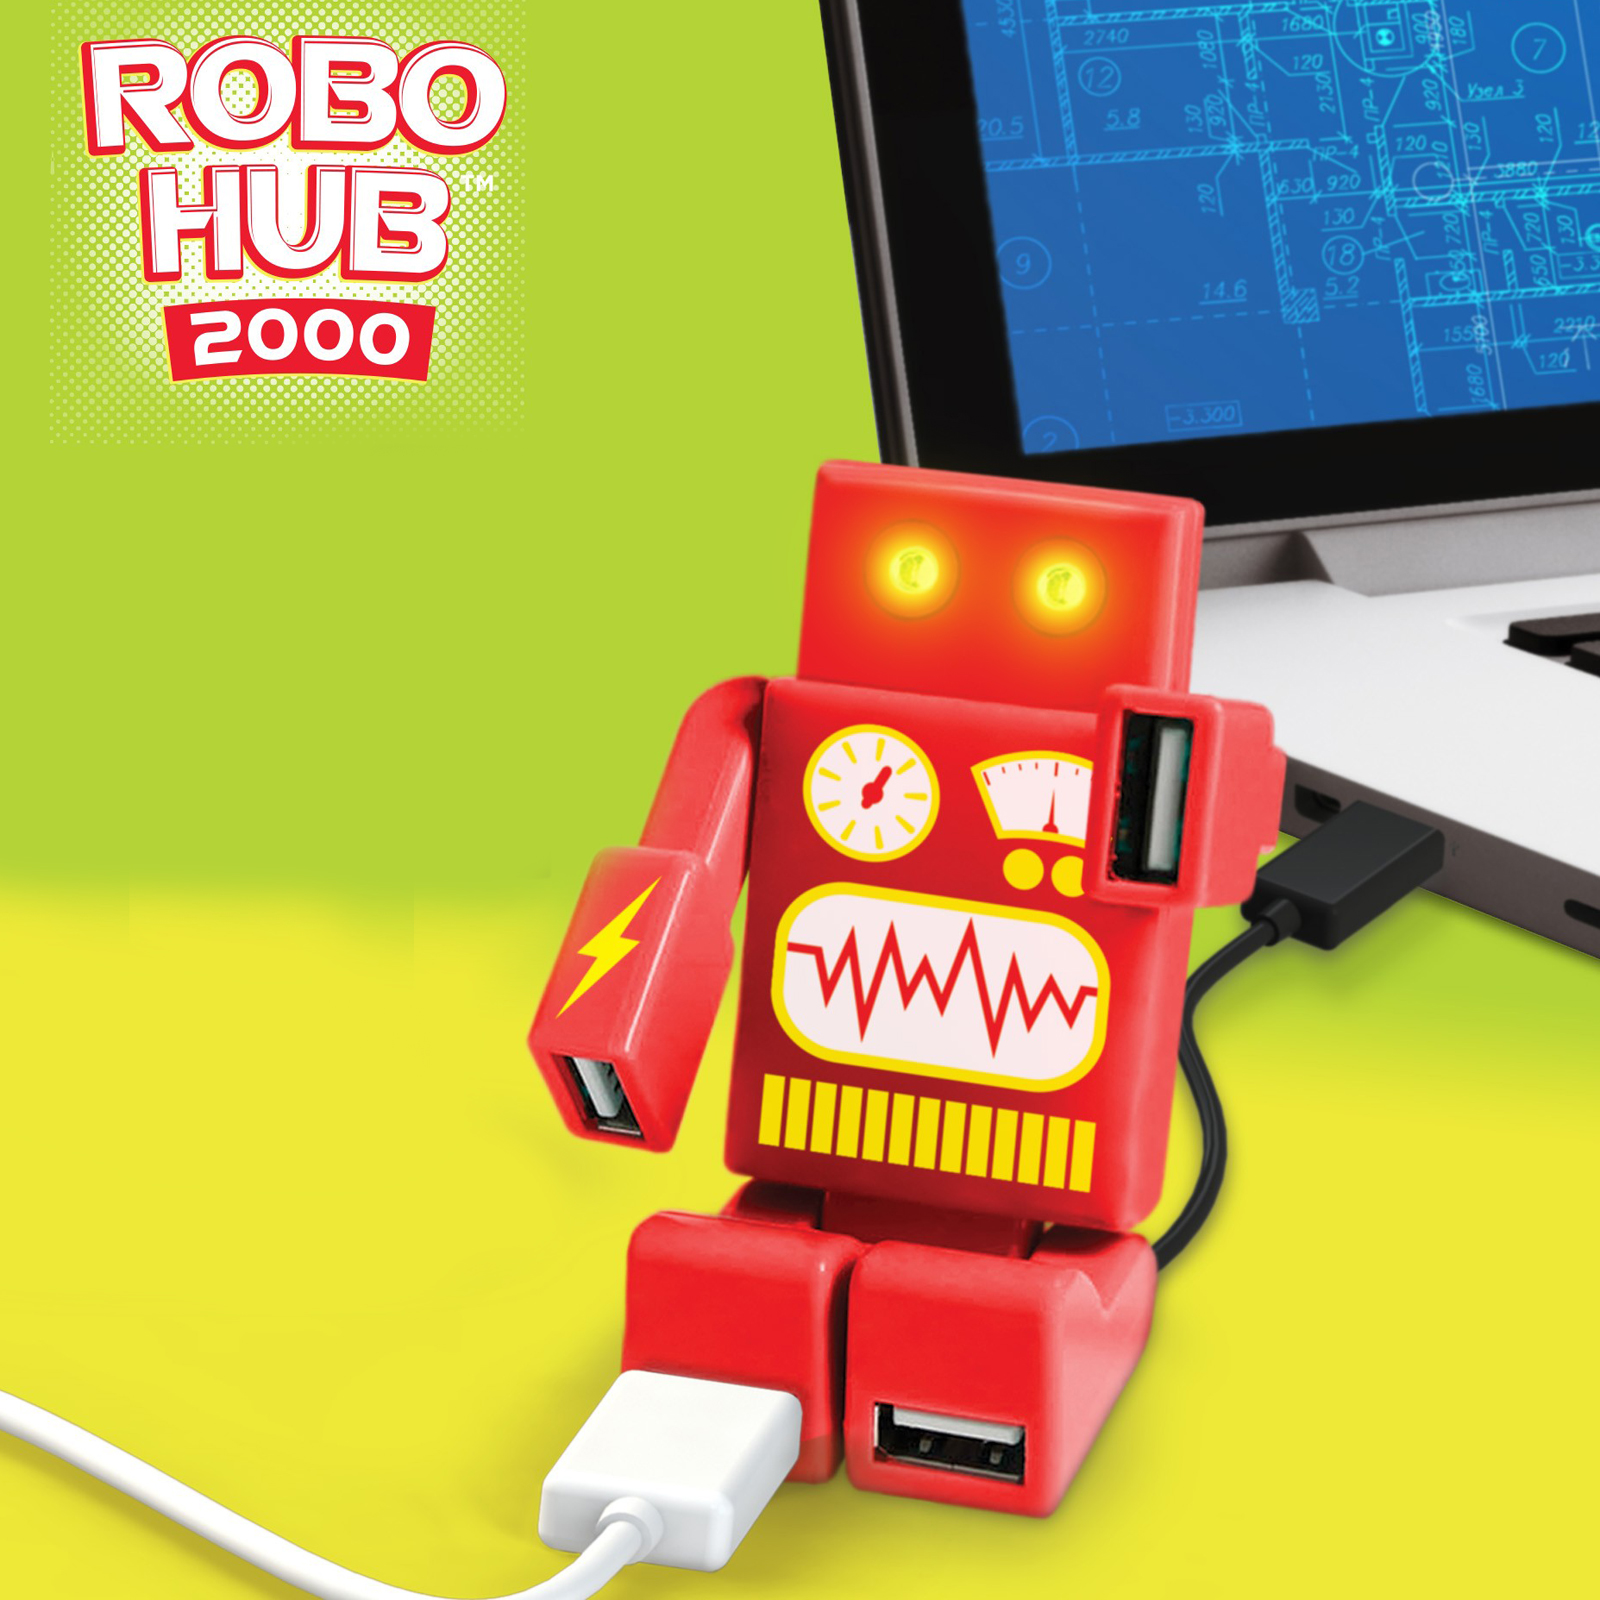 Bargain Robo Hub 2000 Stockists